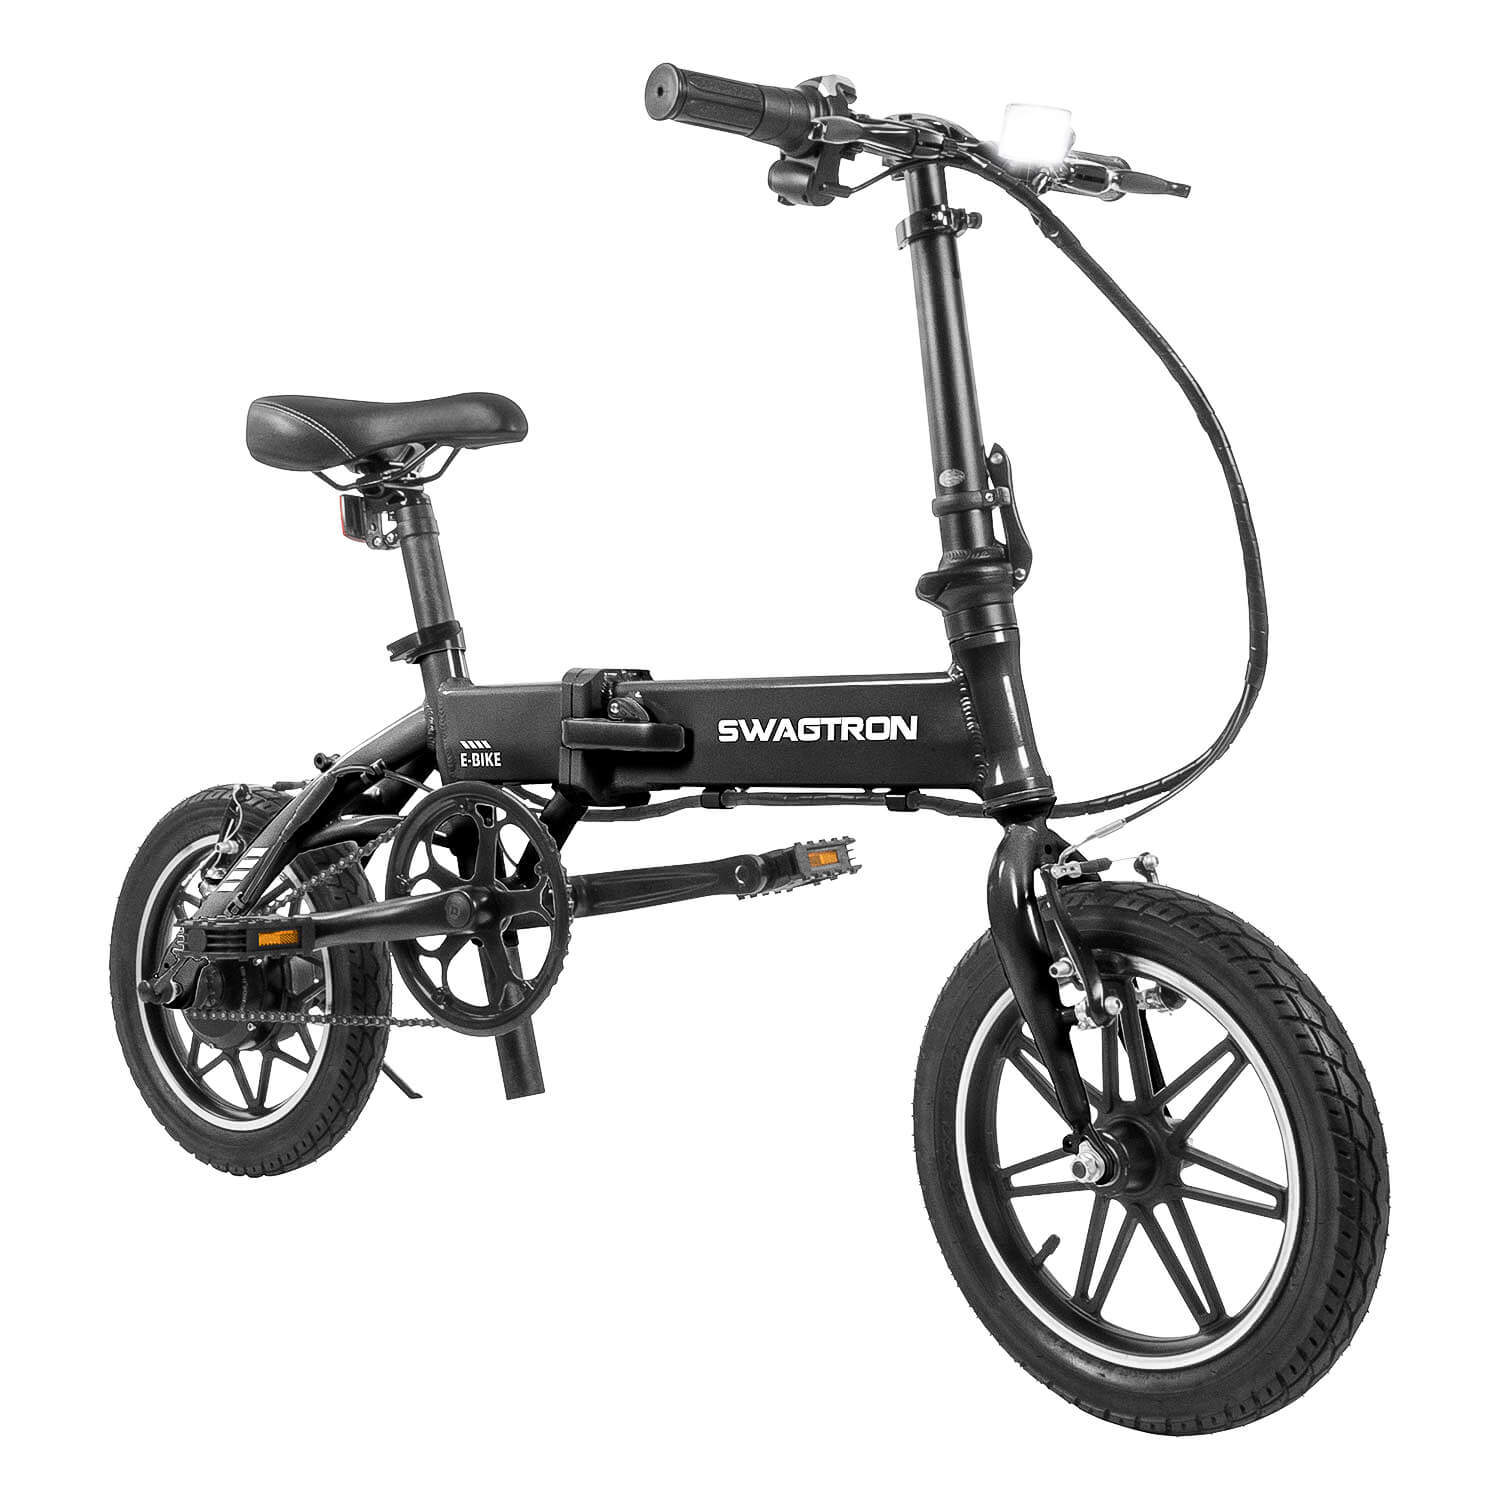 EB5 Foldable Electric Bike by Swagtron with Pedal Assist and Long Range Battery